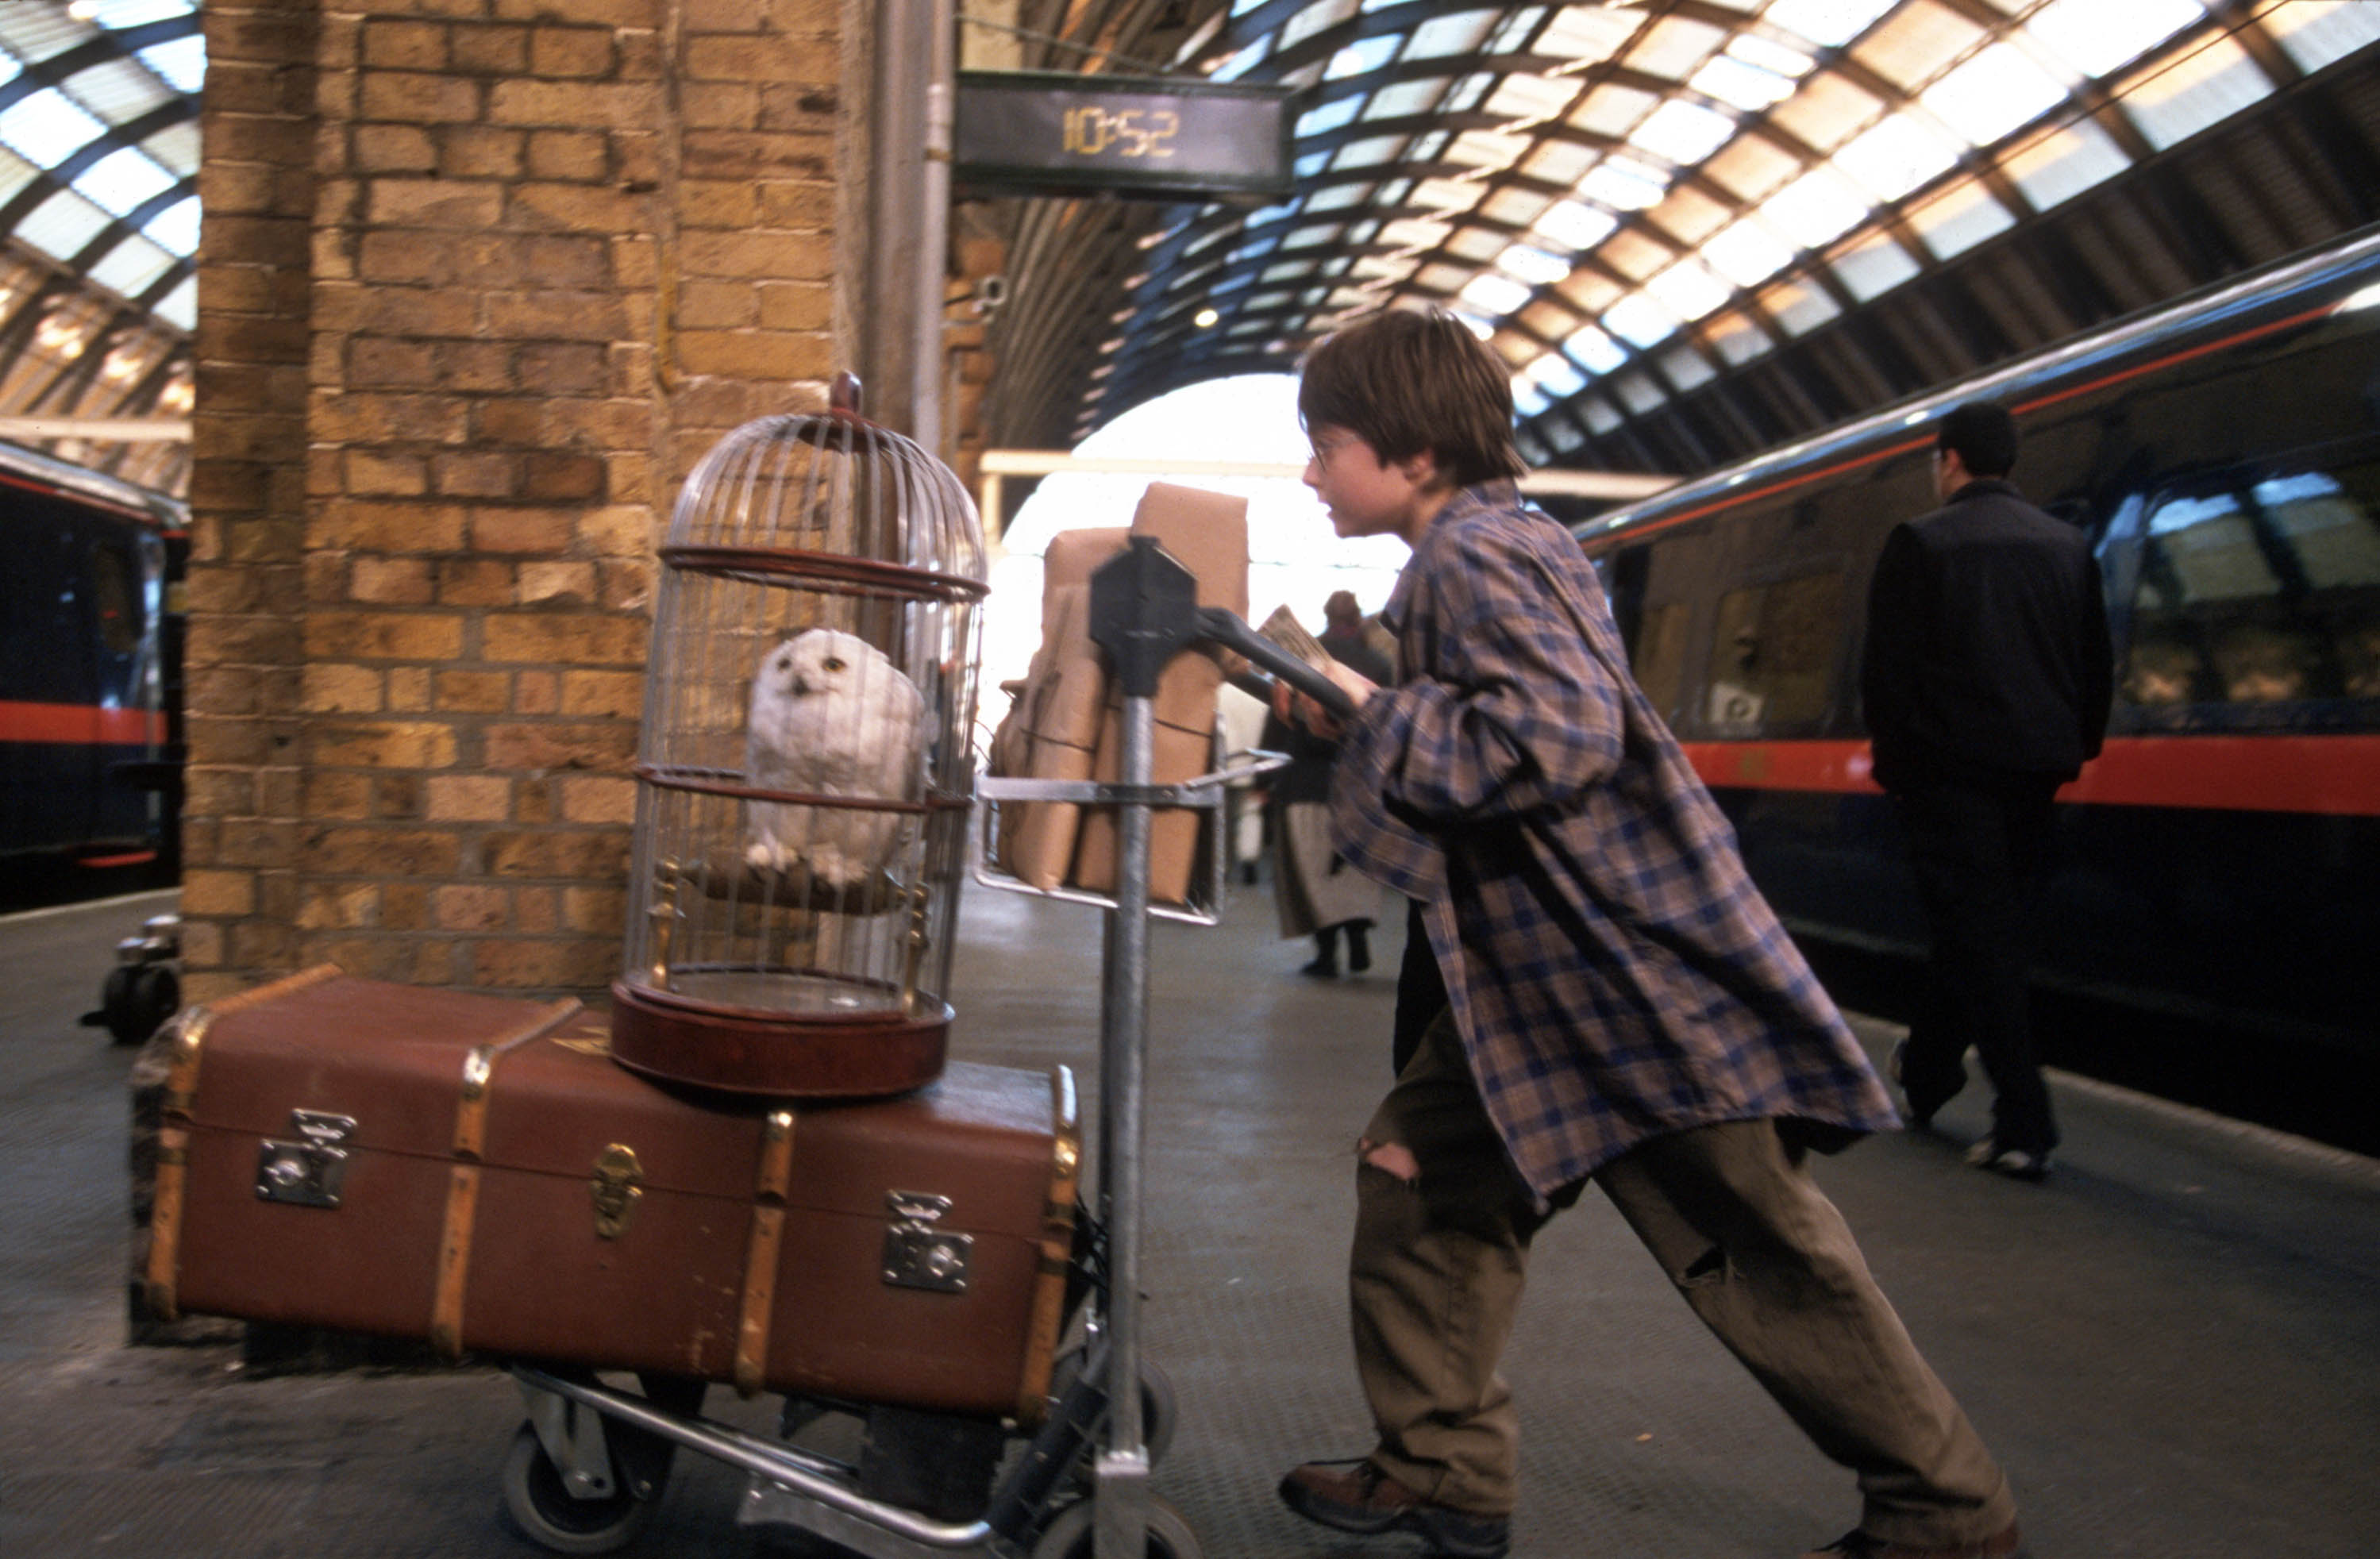 Harry Potter at the train station with his trolley and Hedwig in her cage